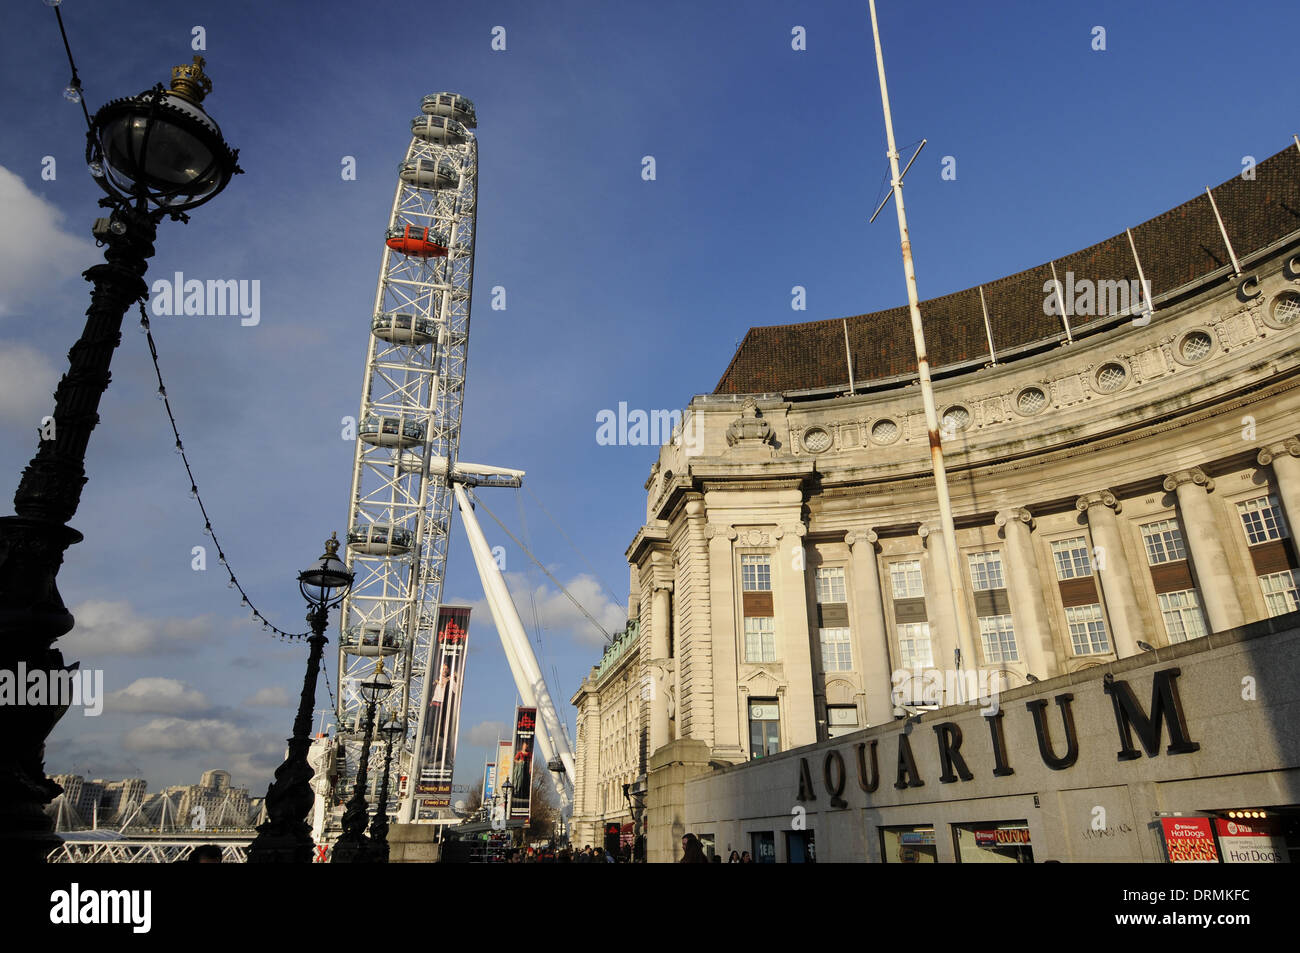 The London Eye and London Aquarium on the Southbank London England - Stock Image